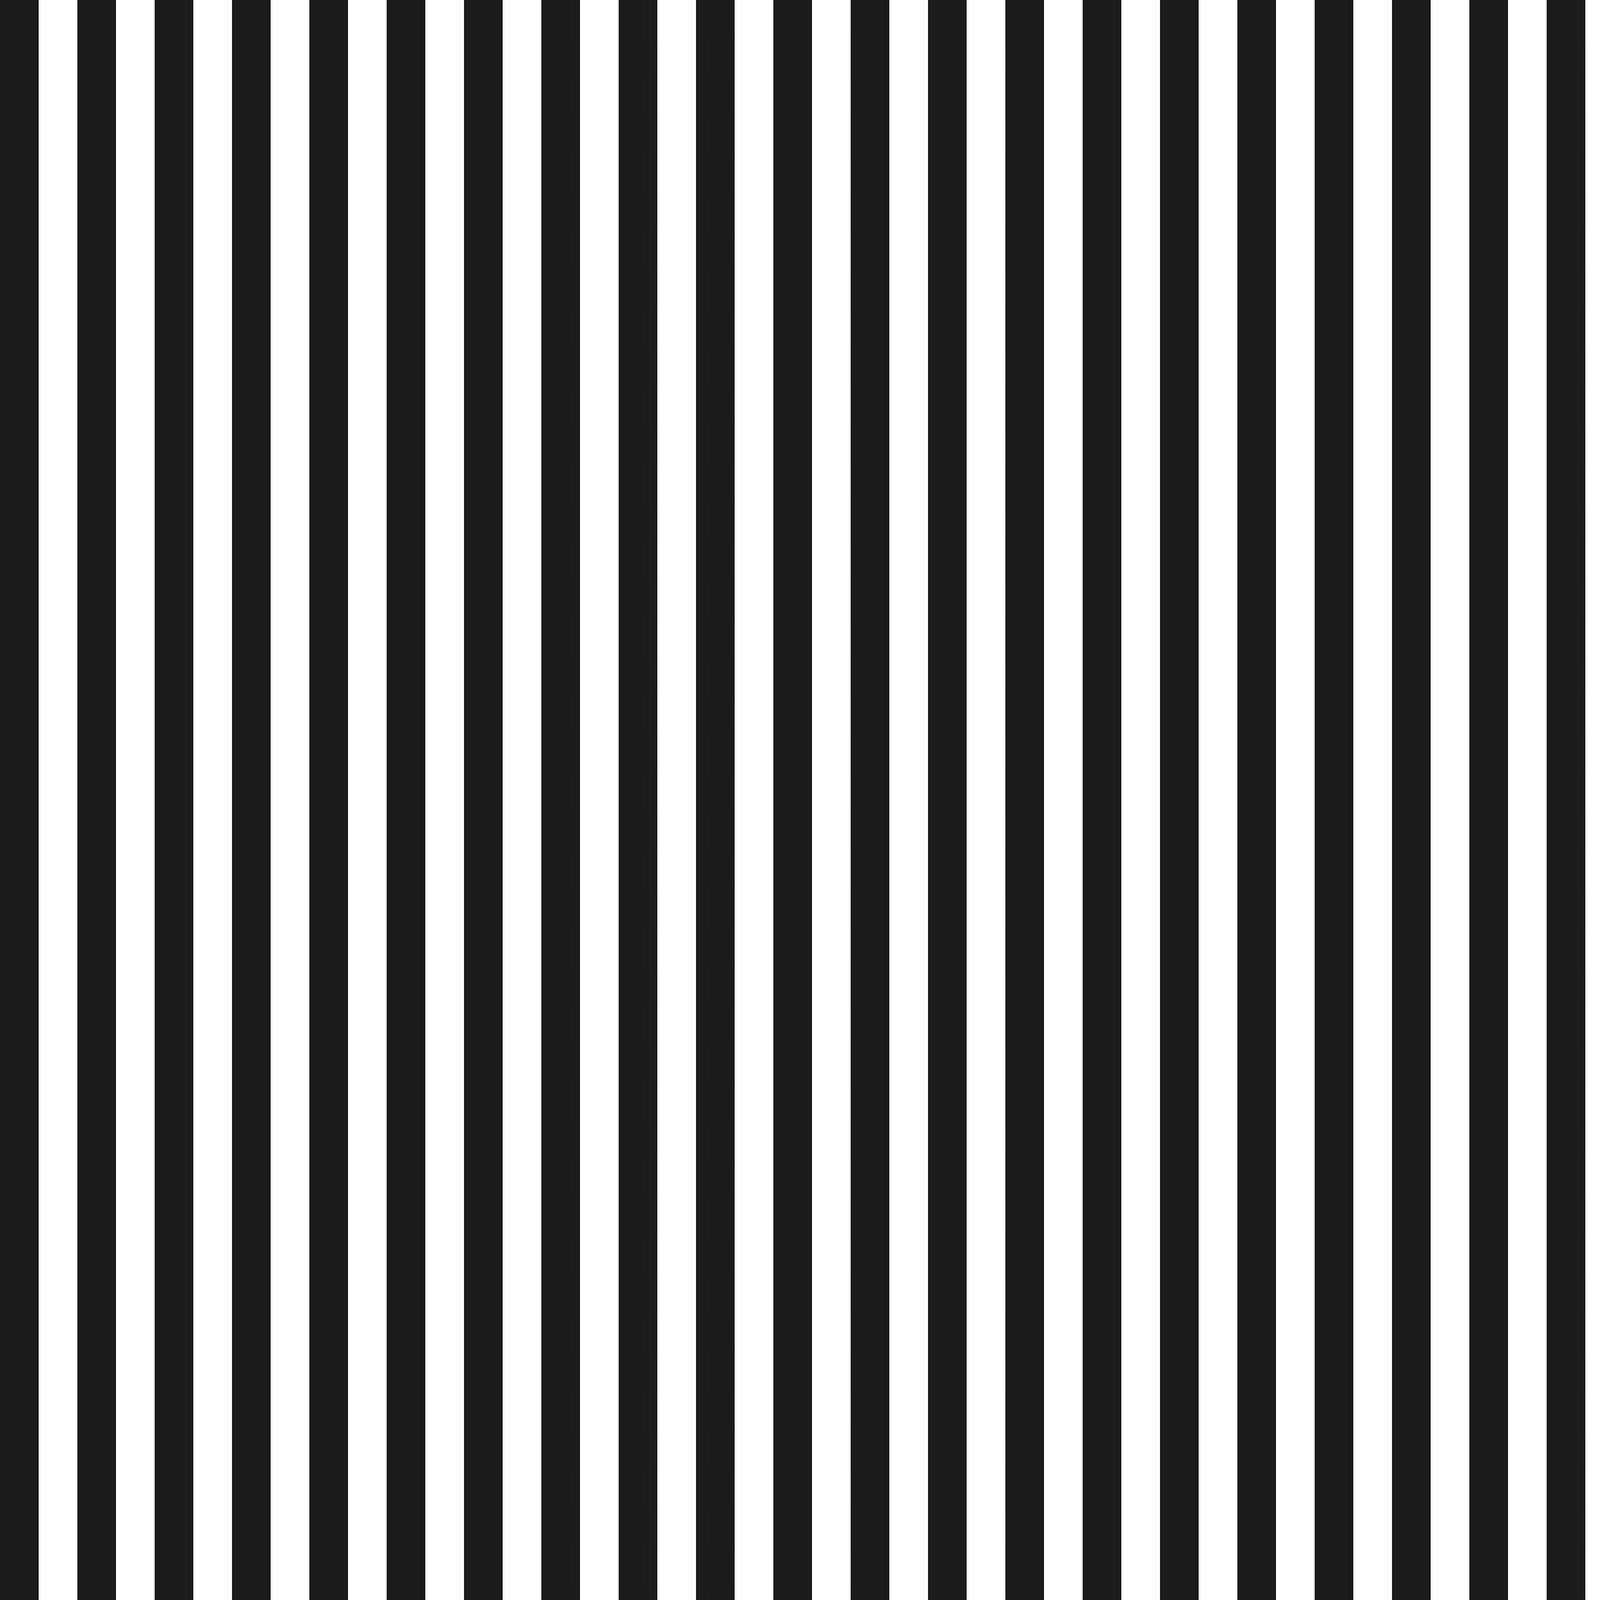 black and white stripes1jpg - photo #8